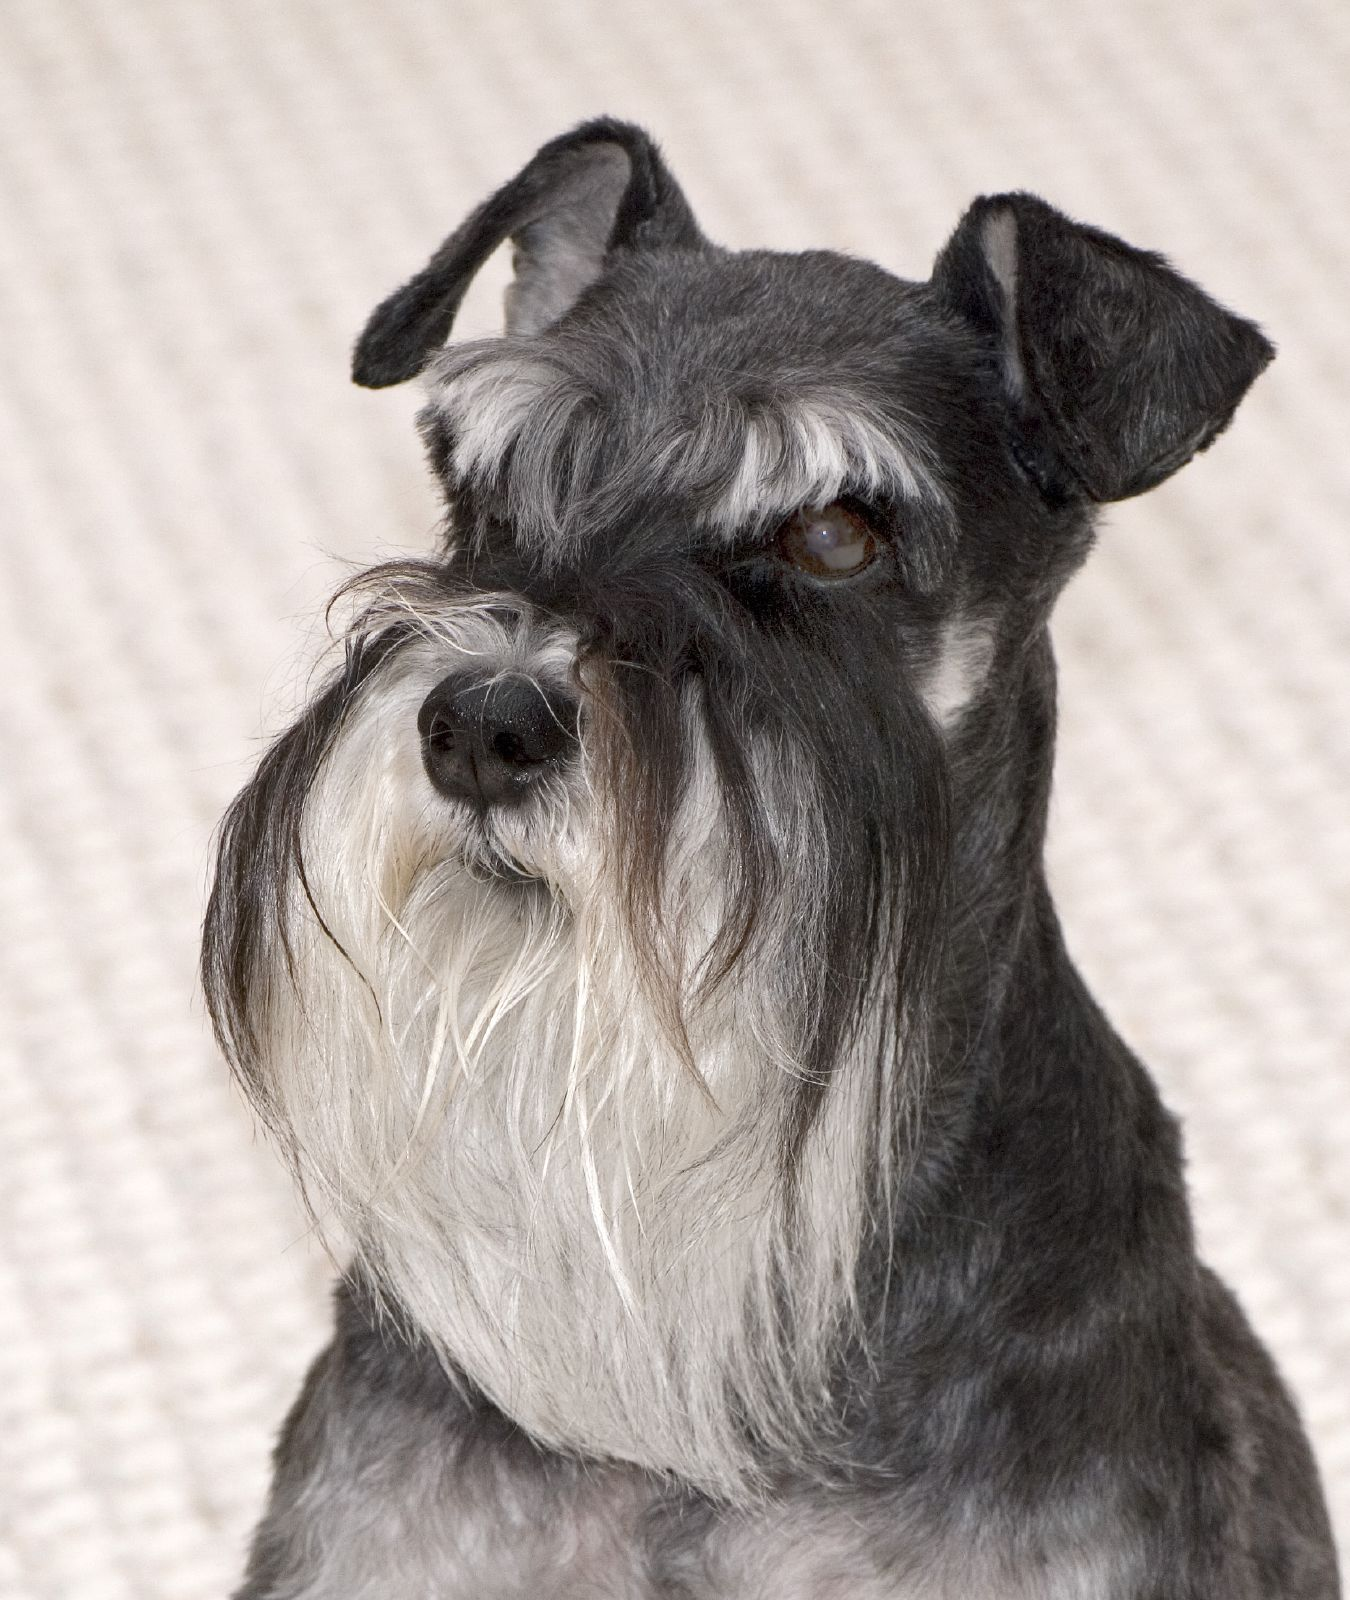 Miniature Schnauzer dog portrait wallpaper